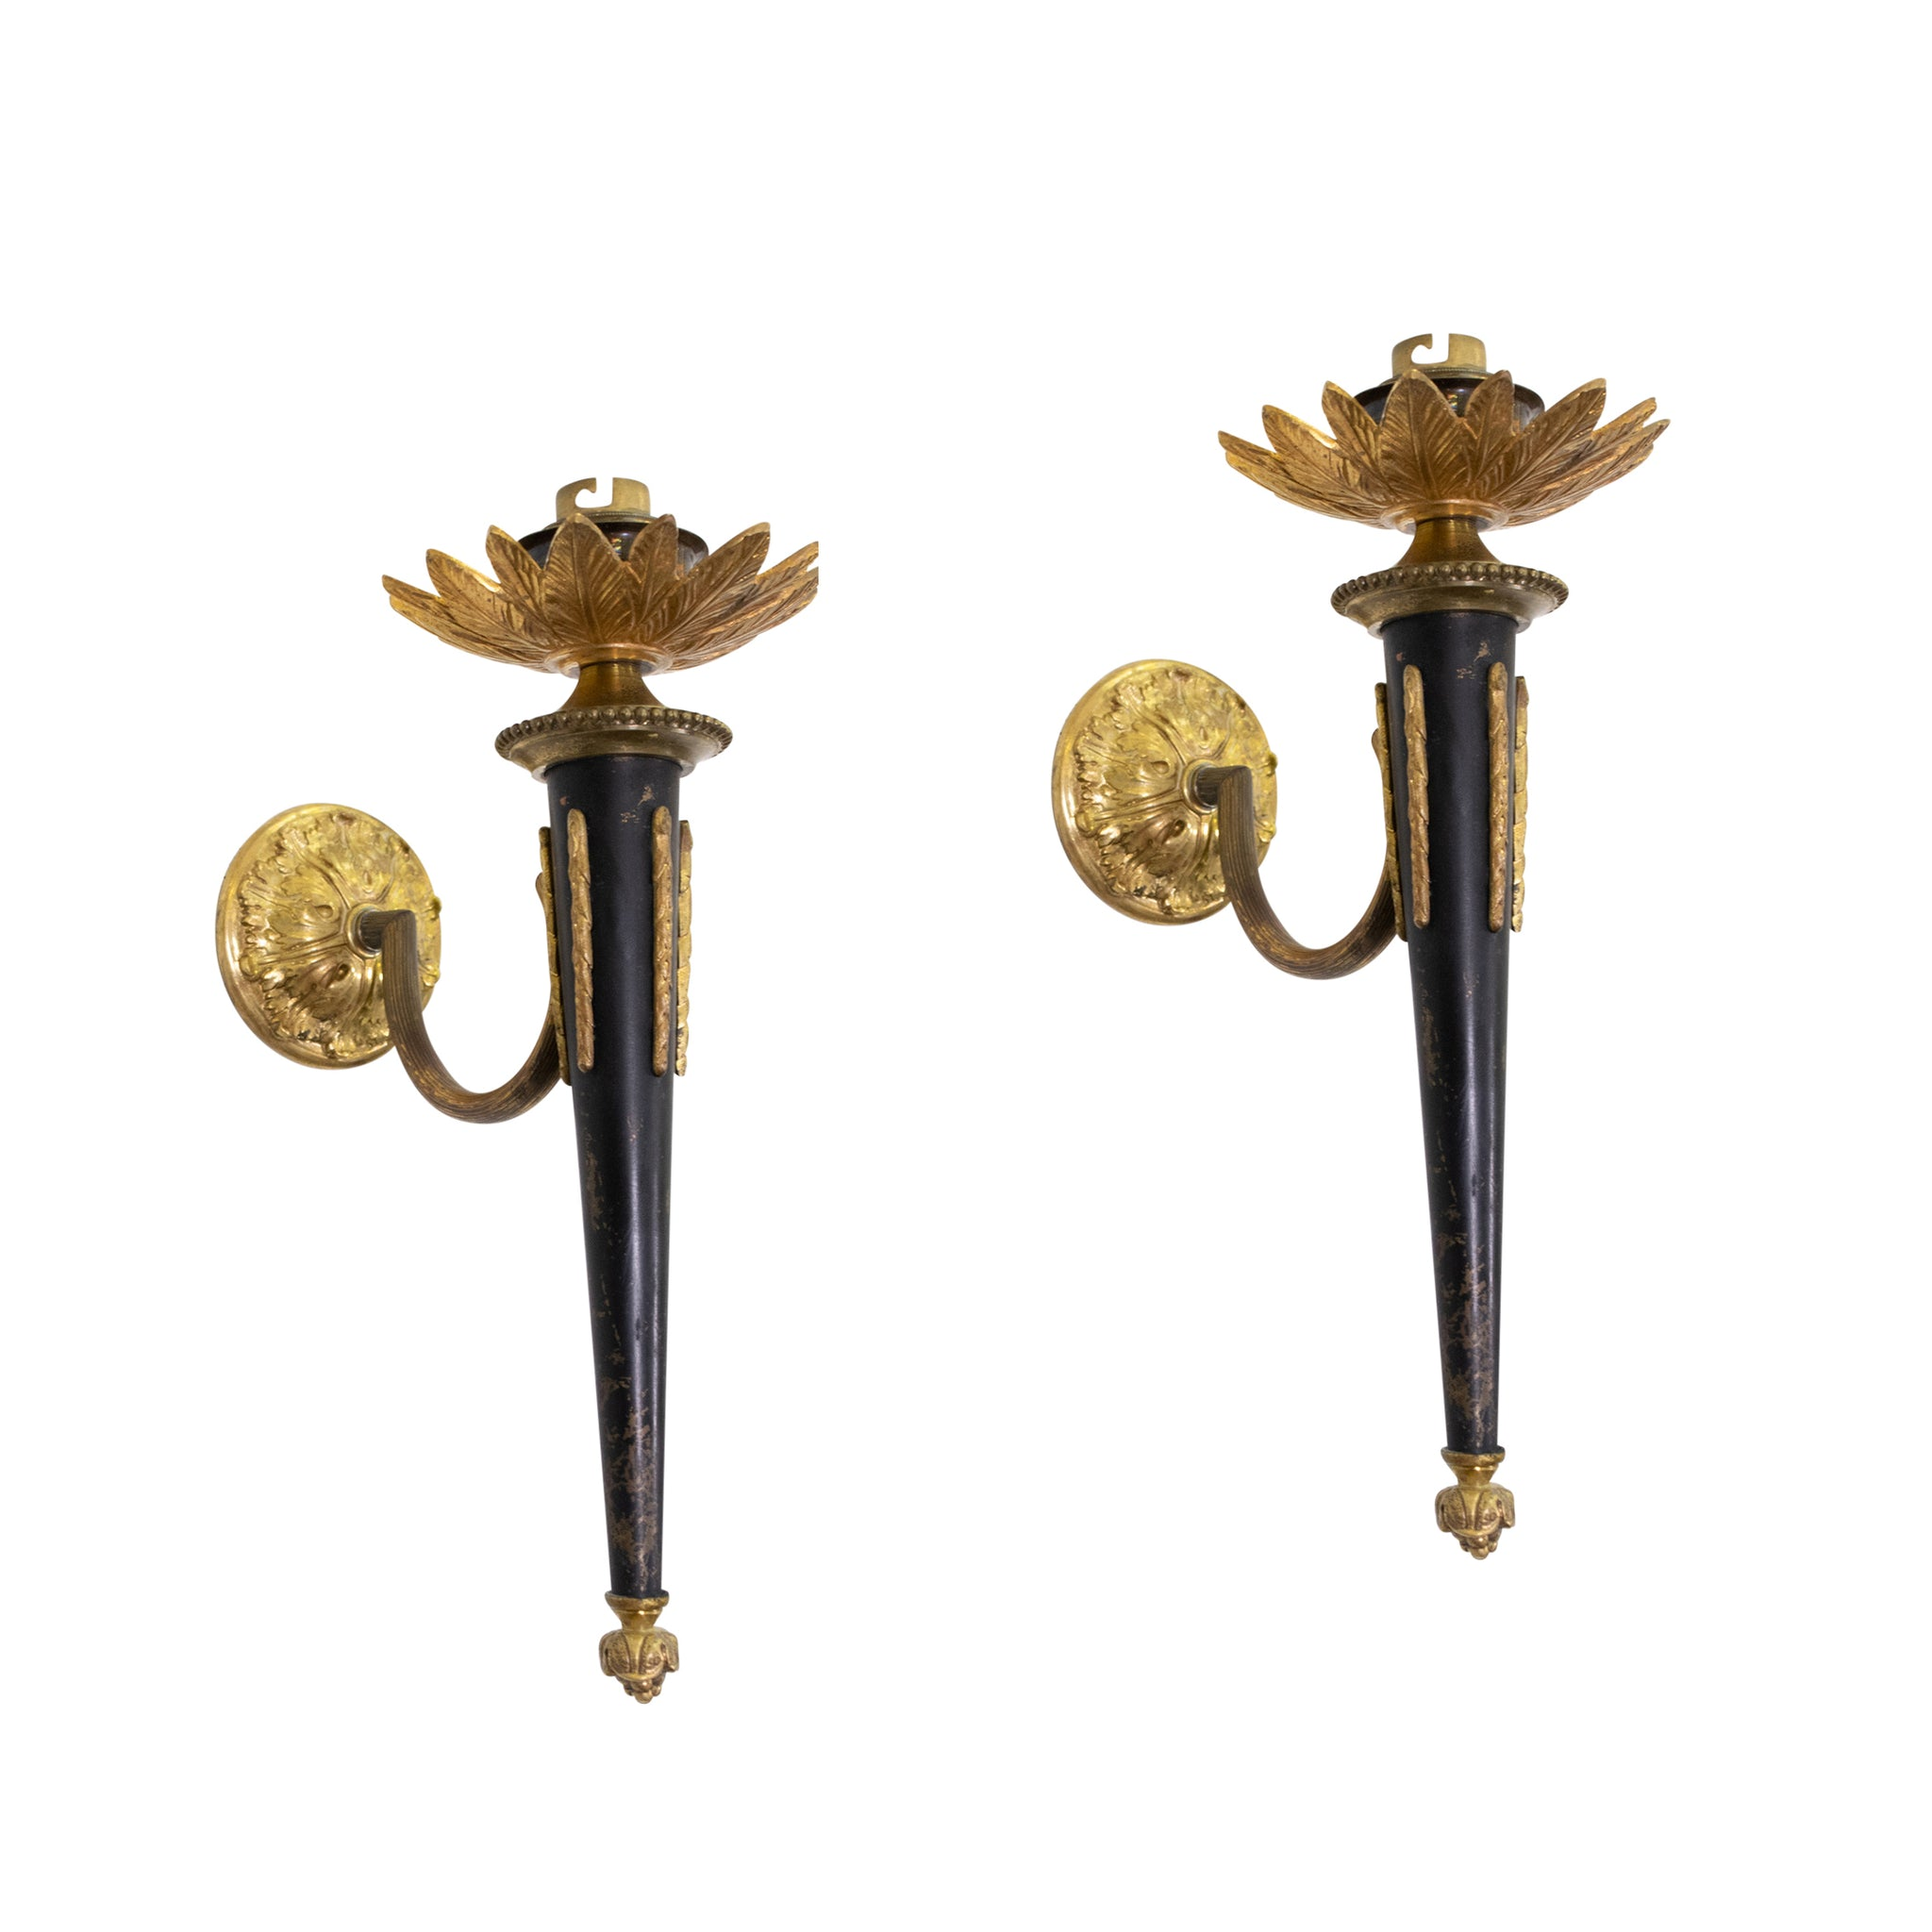 Pair of Empire Style Black and Brass Wall Sconces